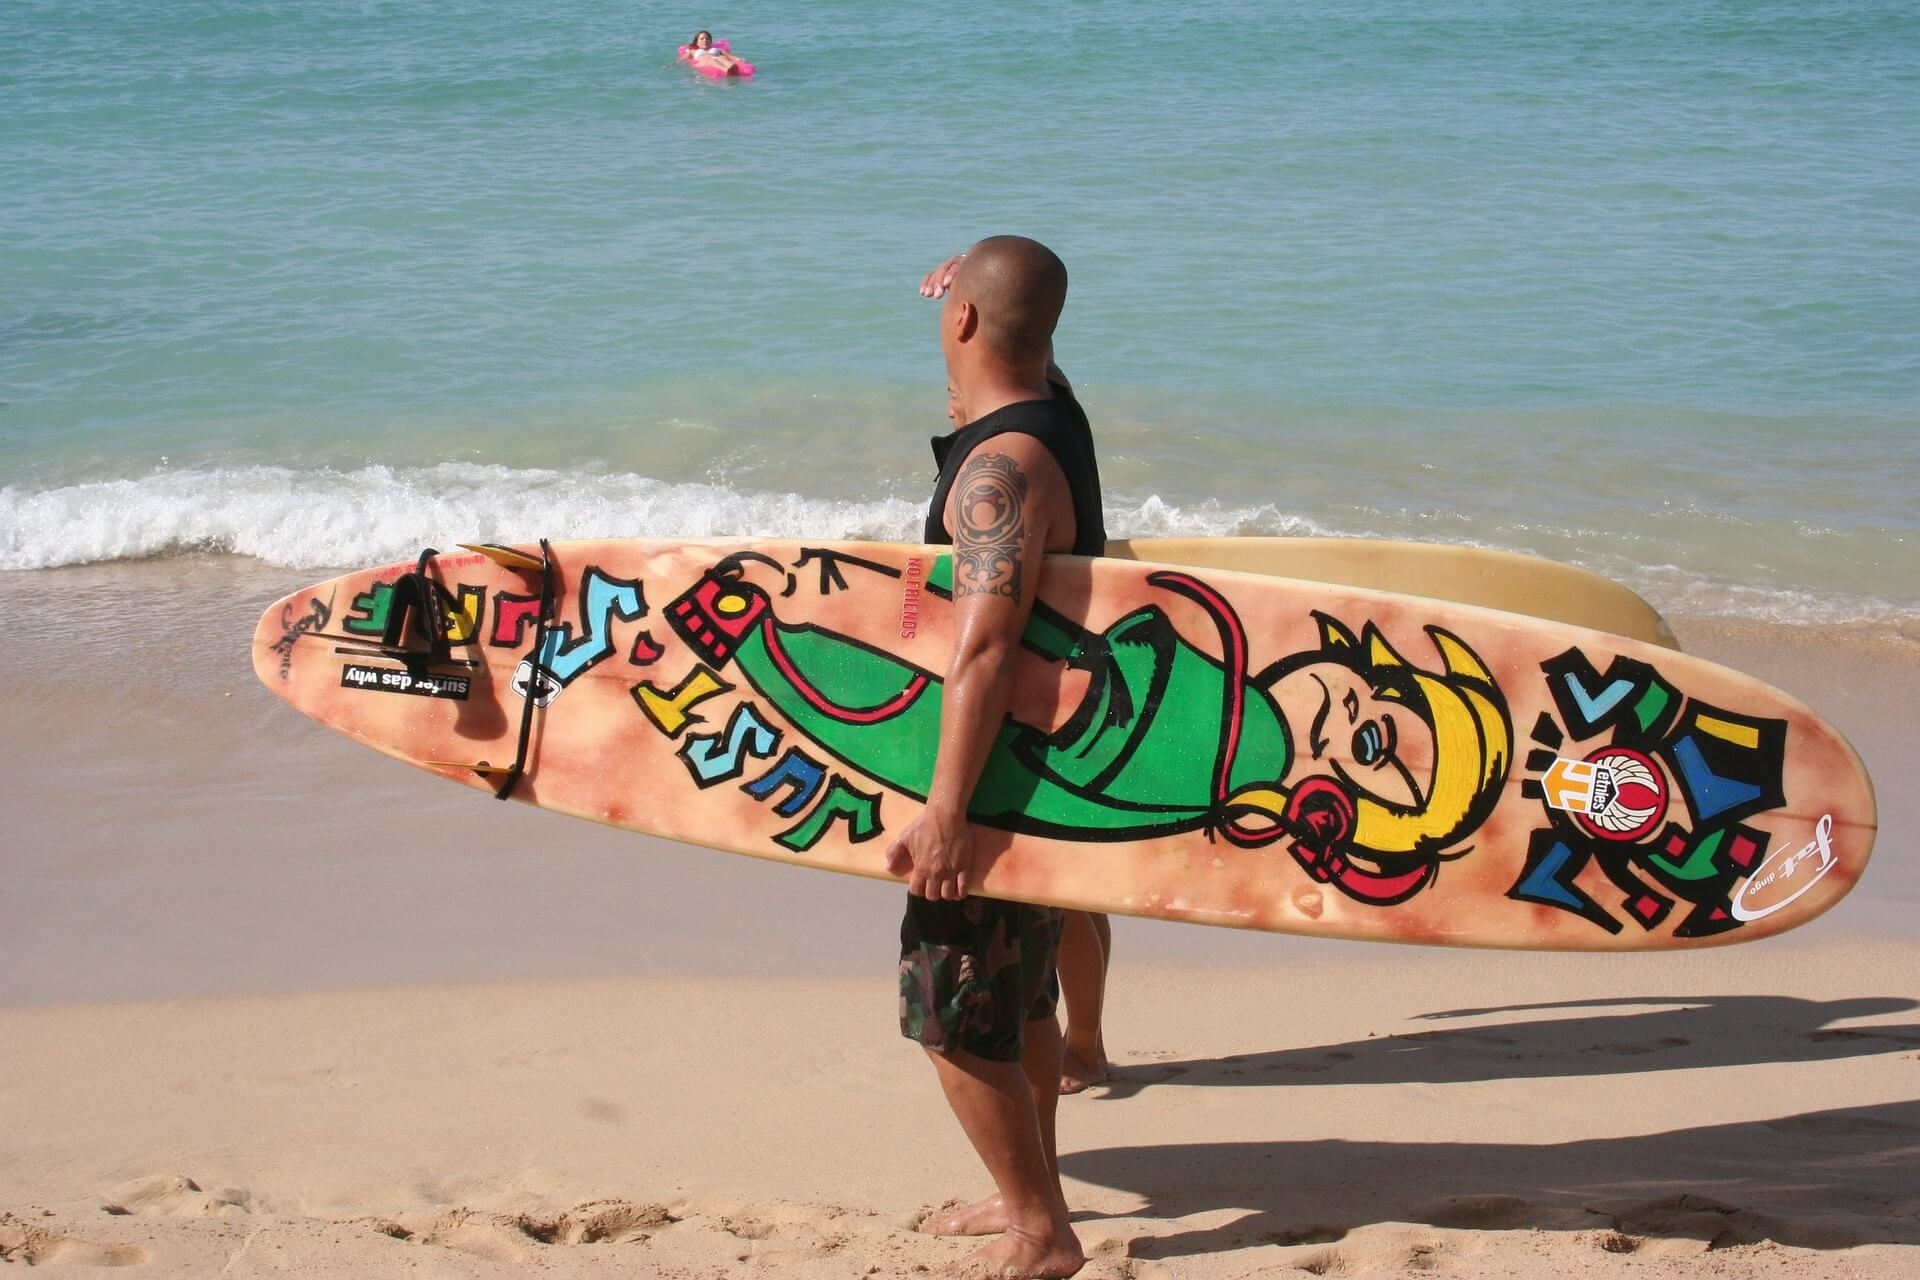 Surfing in Waikiki is one of the best things to do in Hawaii